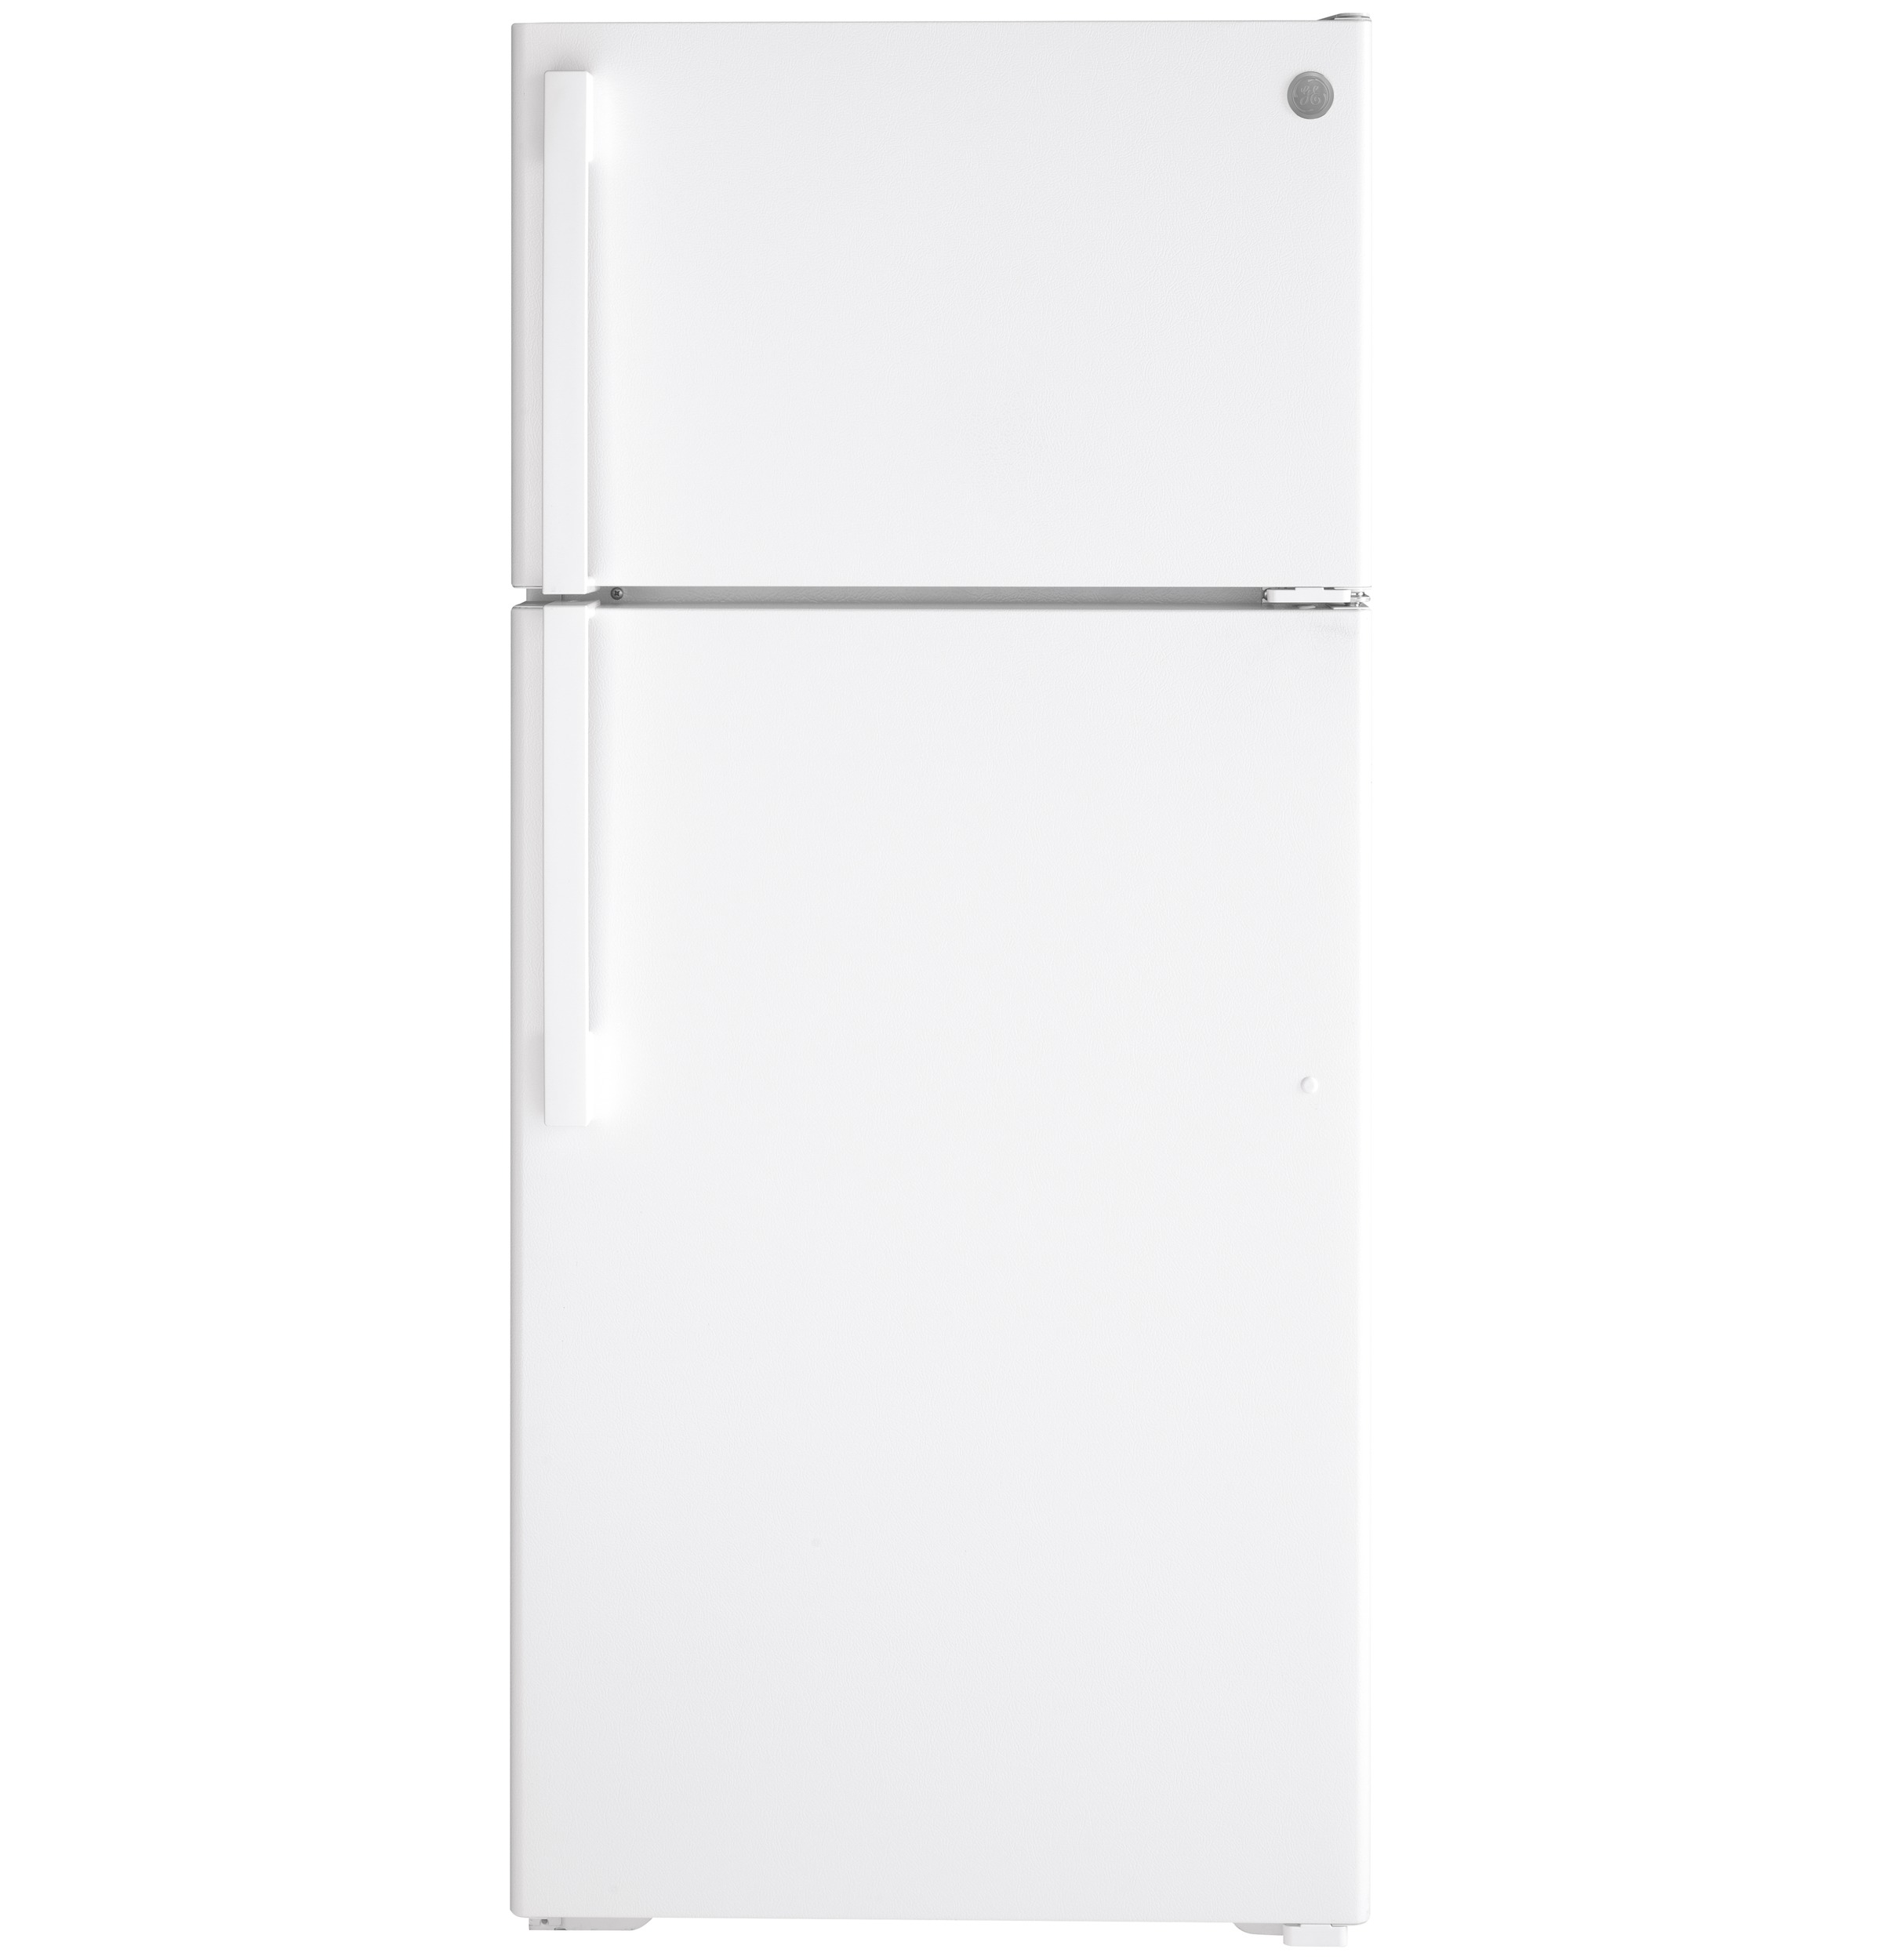 GE GE® 16.6 Cu. Ft. Top-Freezer Refrigerator